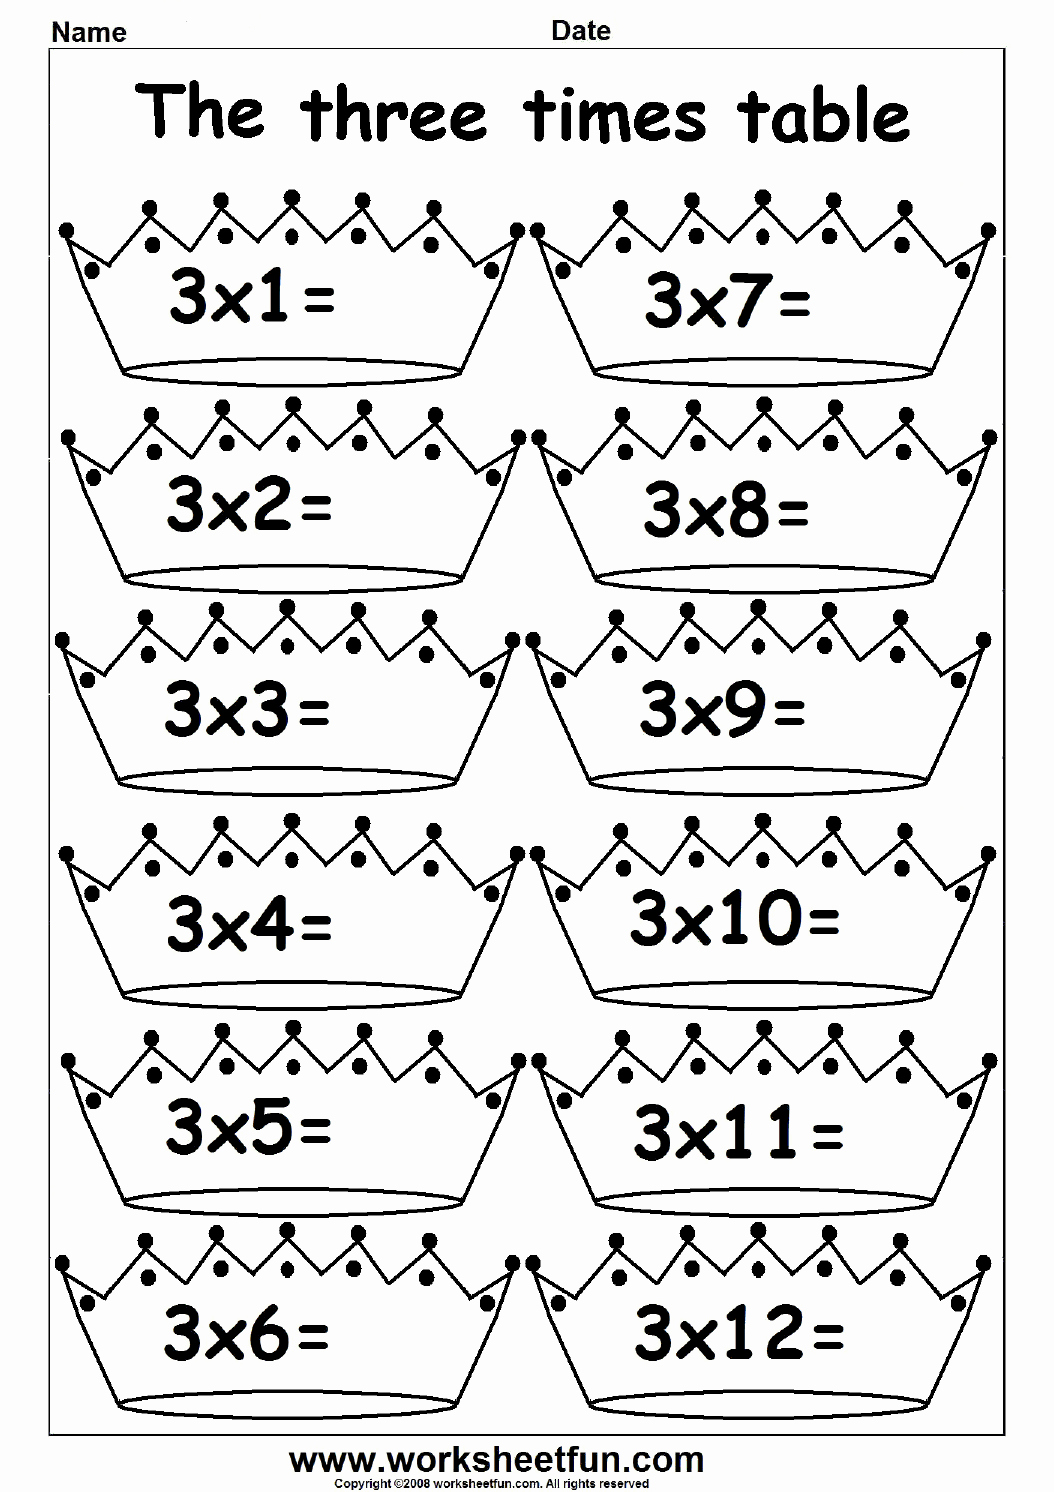 3 Times Table Worksheet Inspirational Multiplication Times Tables Worksheets – 2 3 4 6 7 8